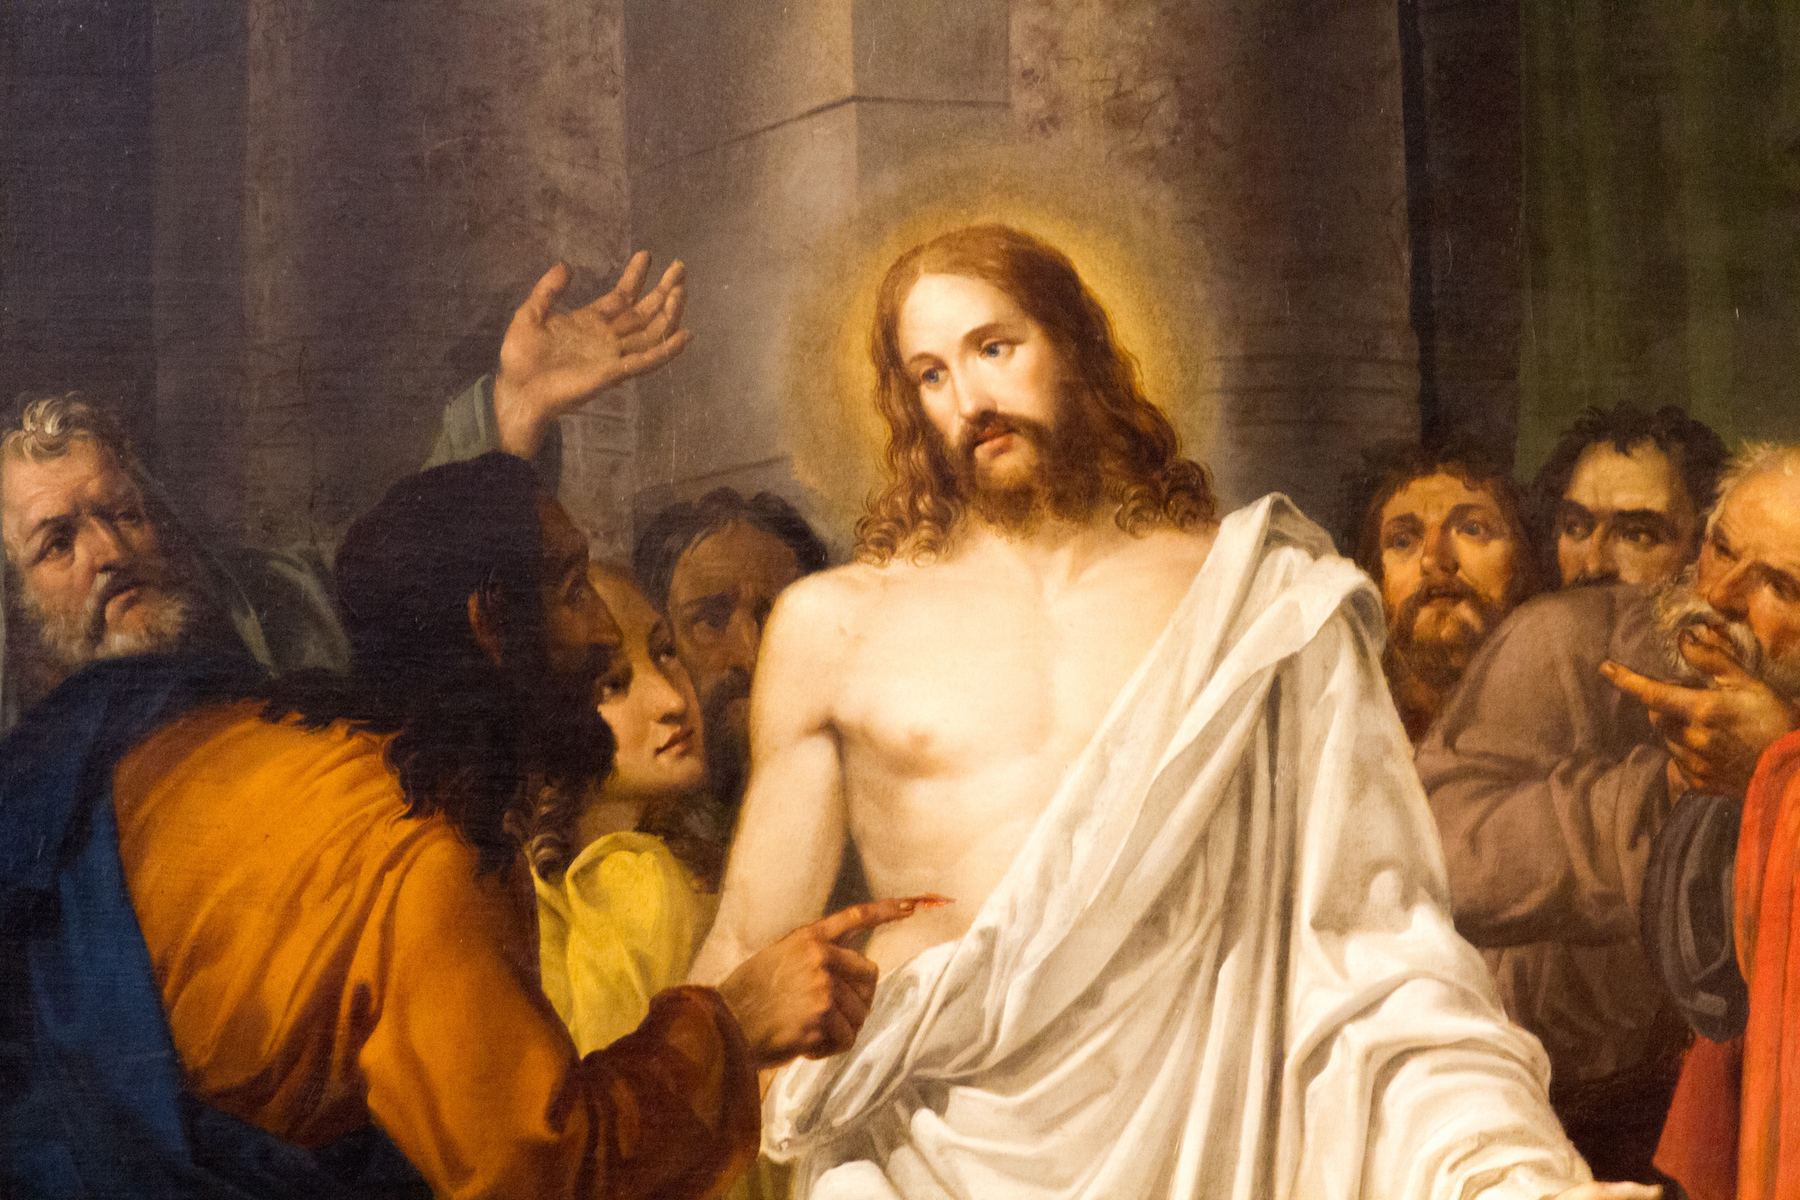 Jesus' Death Made All Things New, but What Does That Mean?